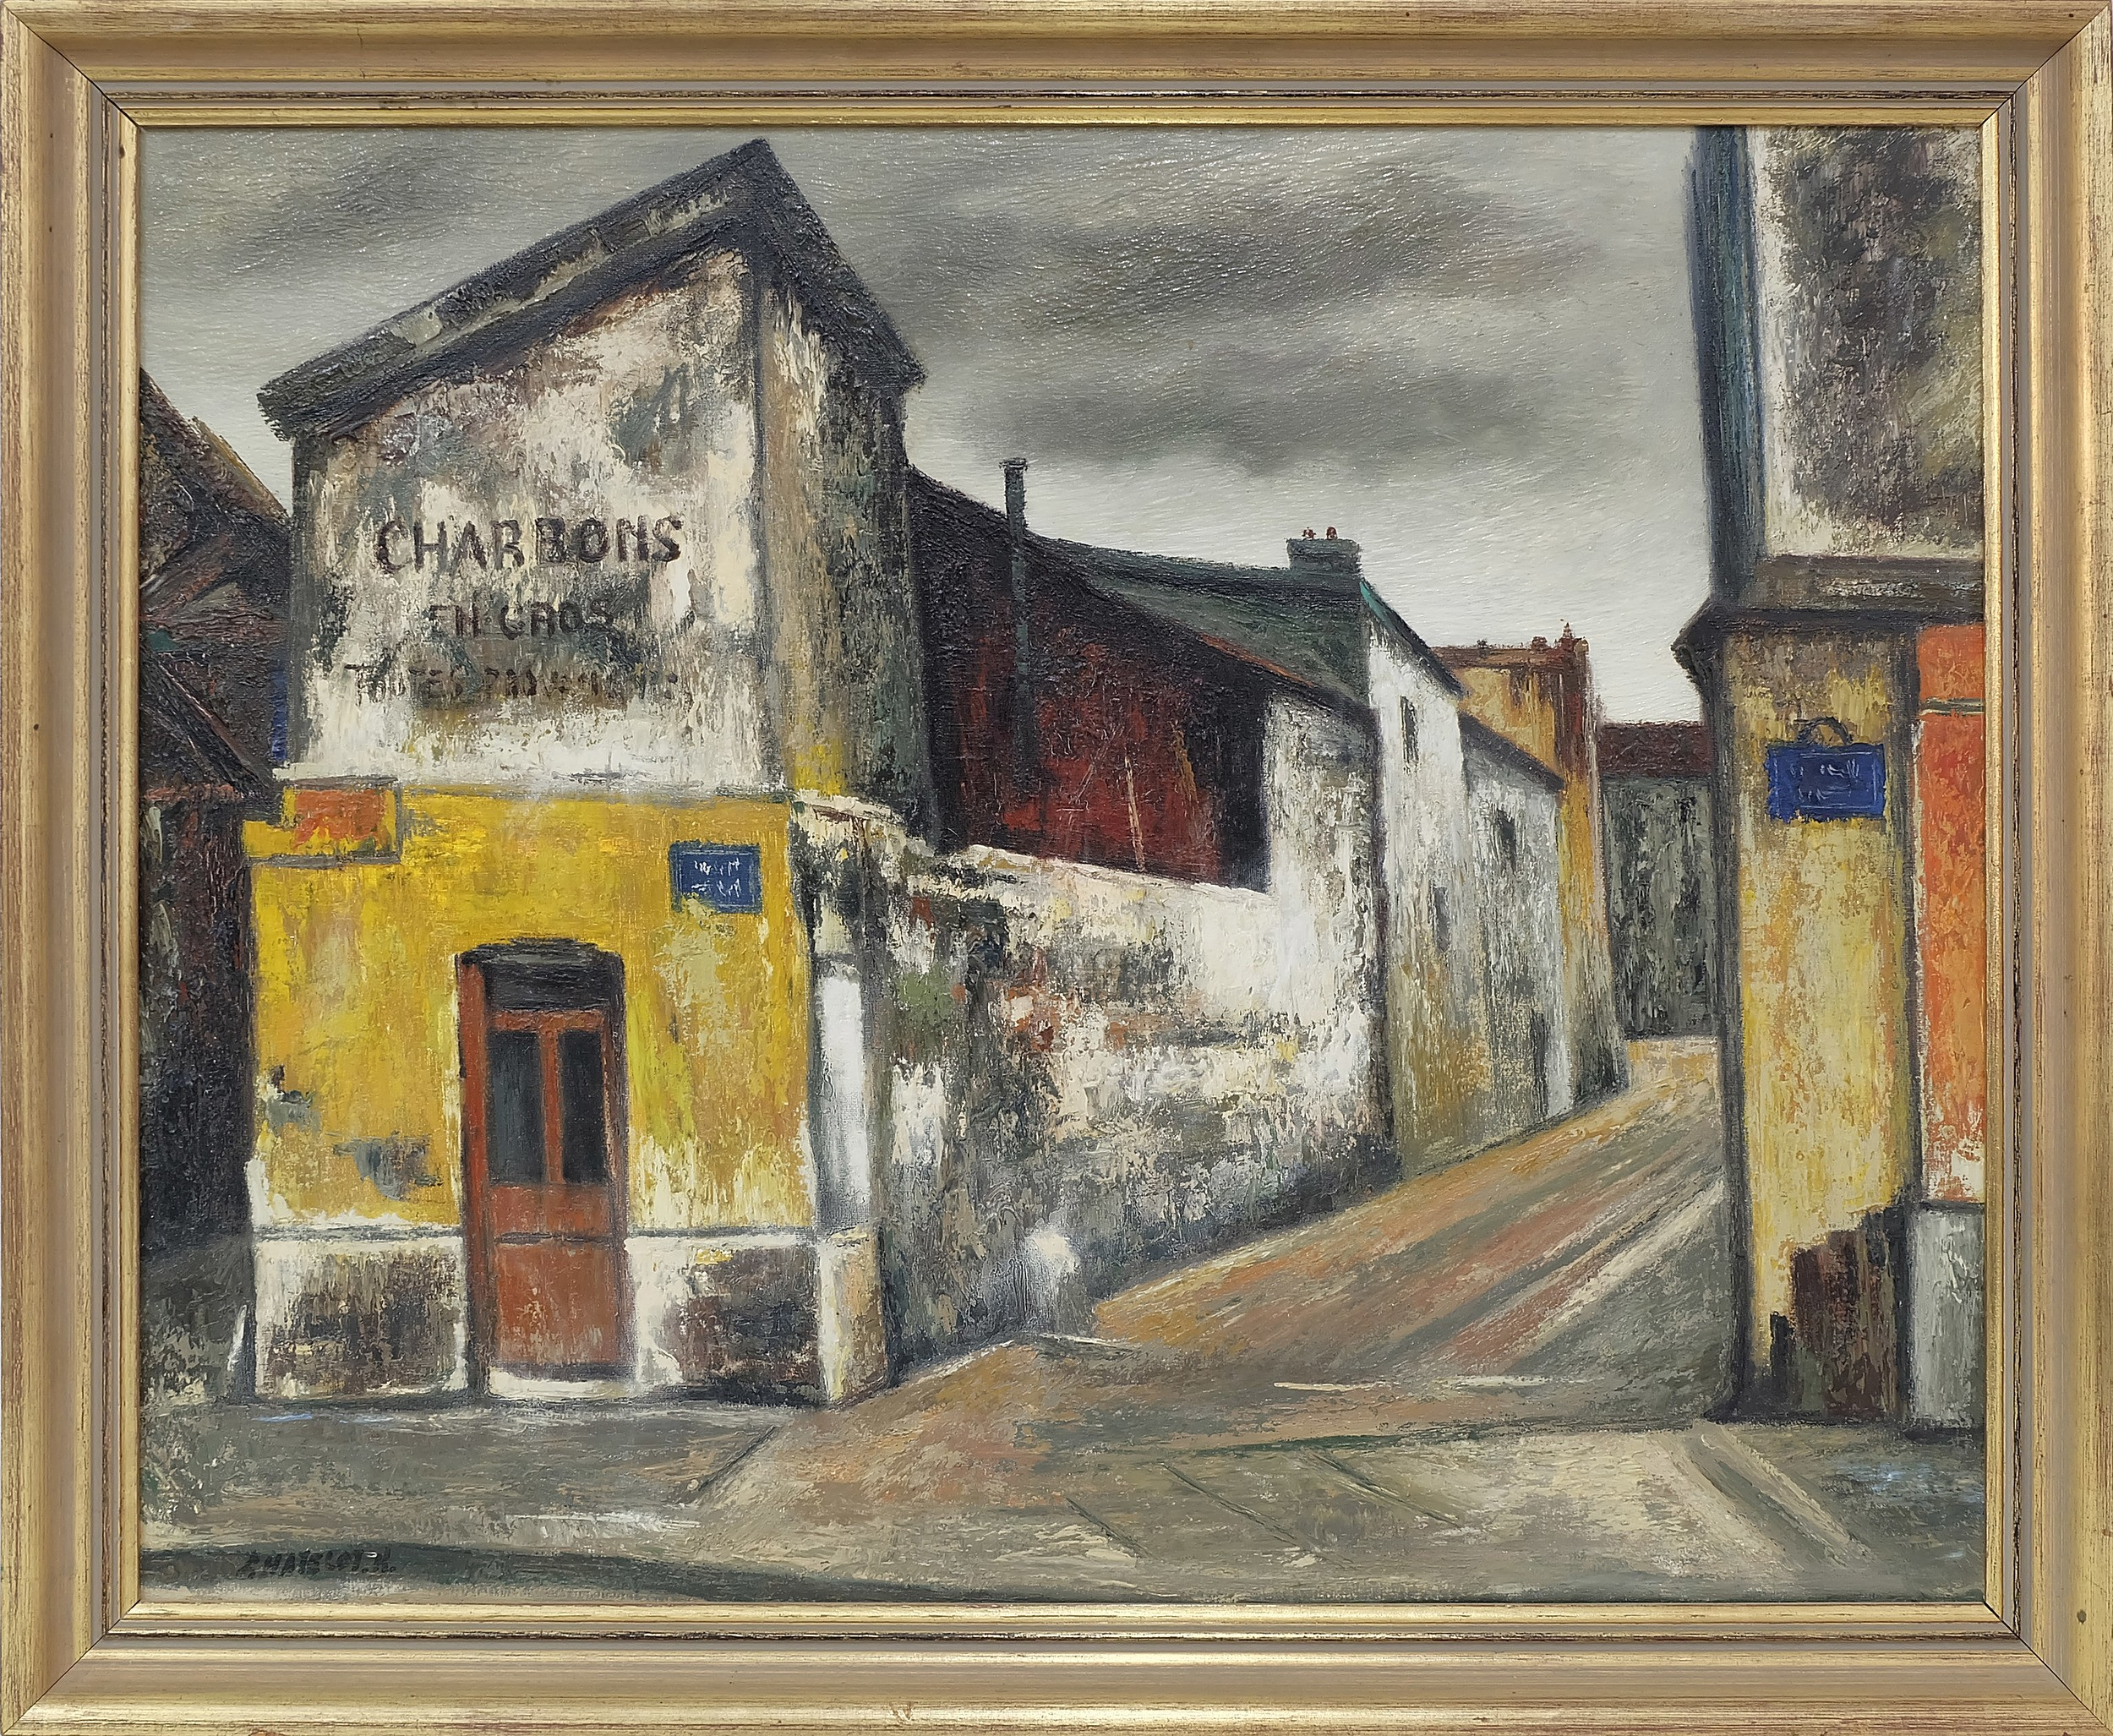 'Ronald W. Chatelot (1922-) Downtown Scene Oil on Canvas'